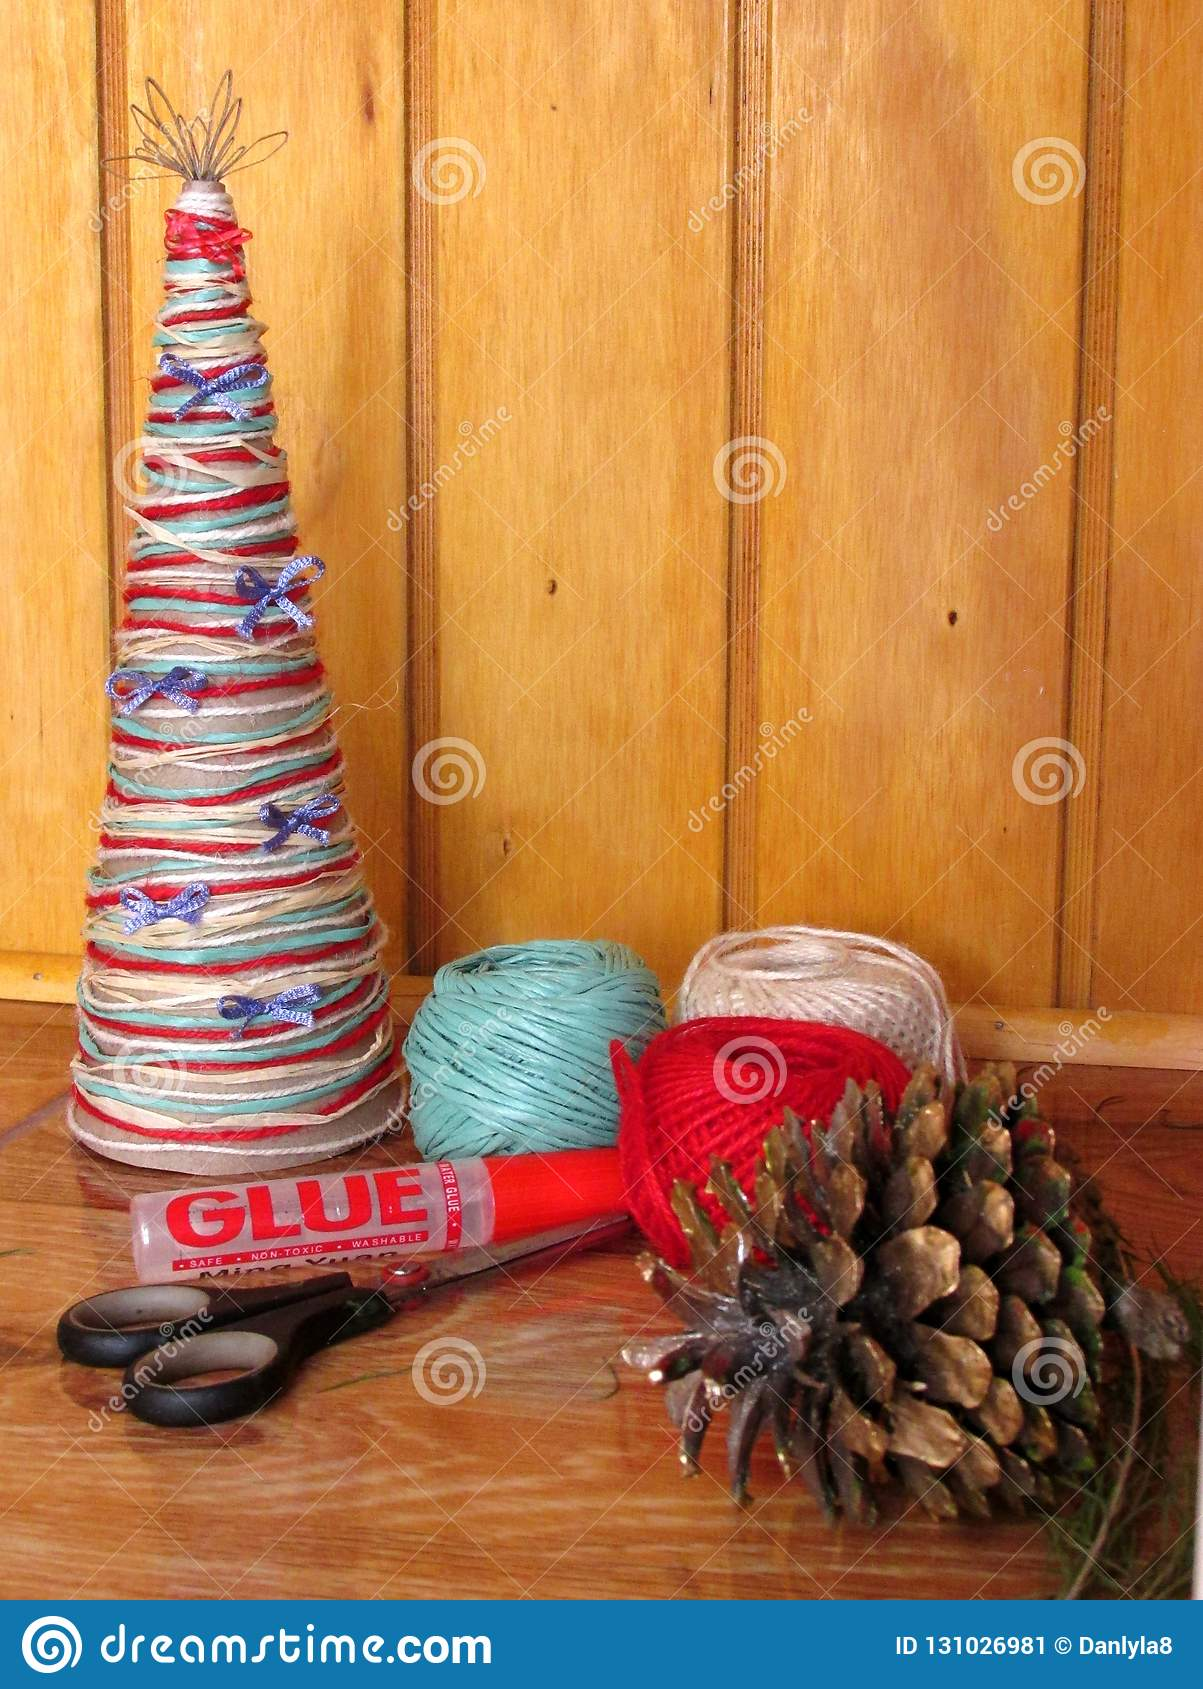 DIY homemade Christmas tree. Materials for Christmas crafts project. Do-it-yourself. Christmas tree decorations.